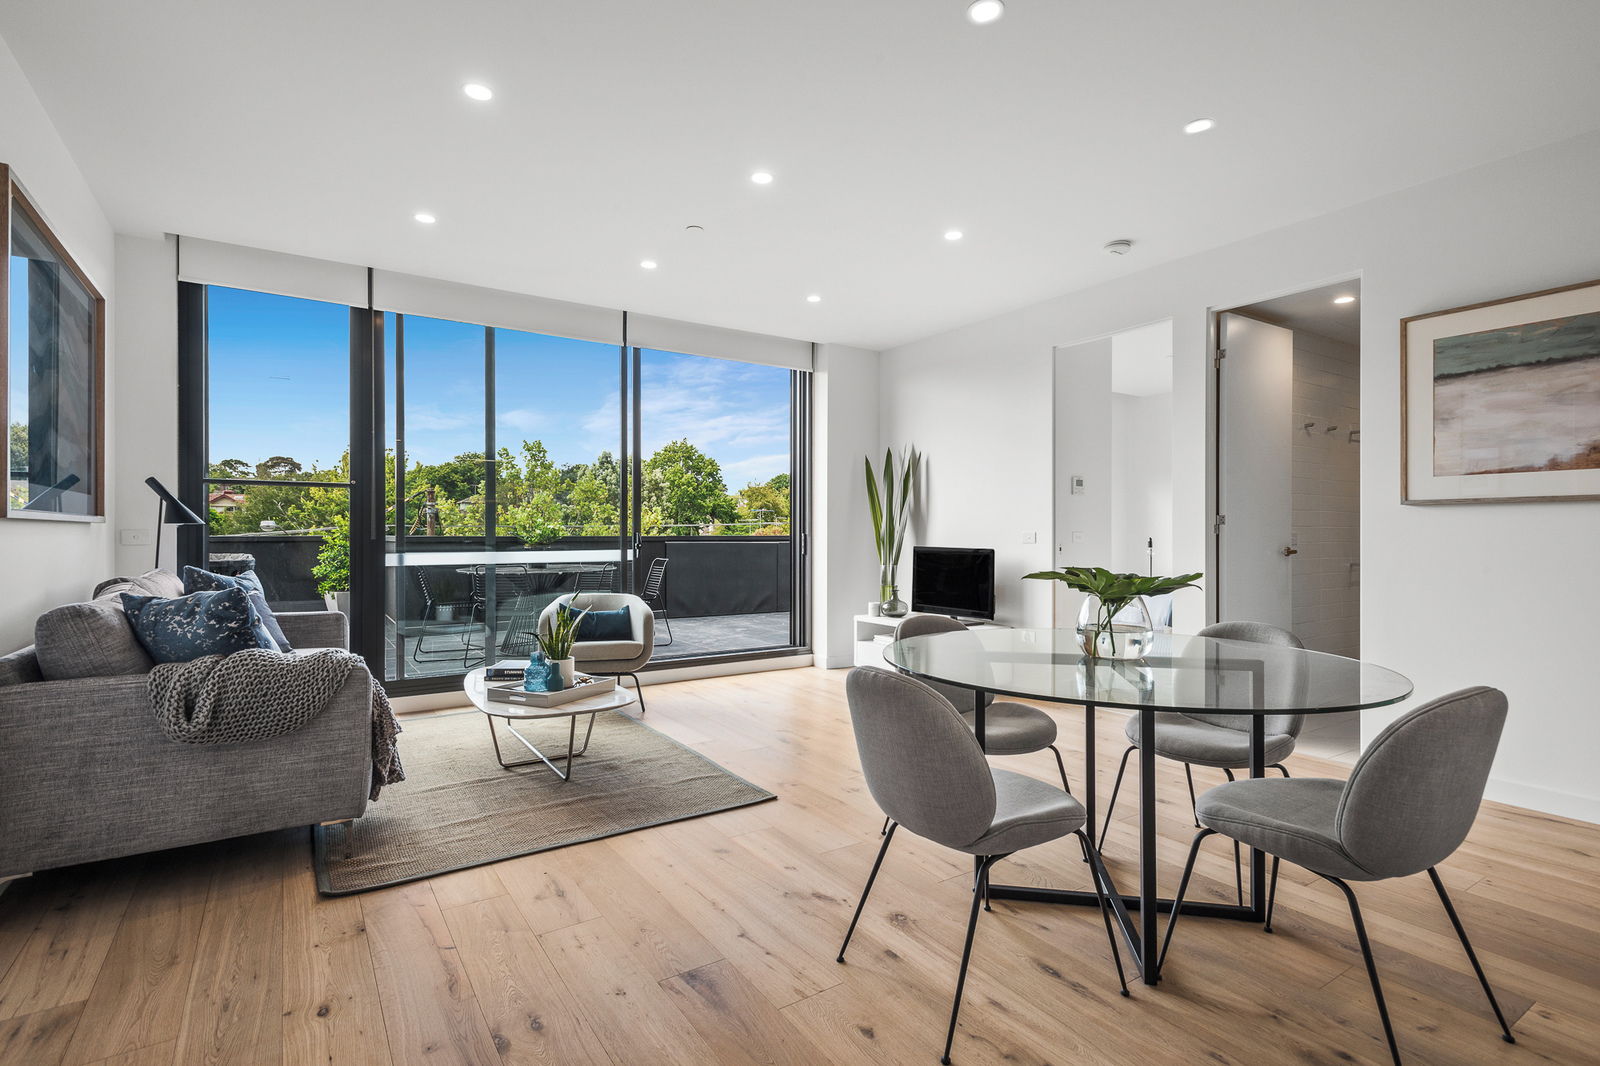 2.01/780 Riversdale Road, Camberwell 3124 - Image 1